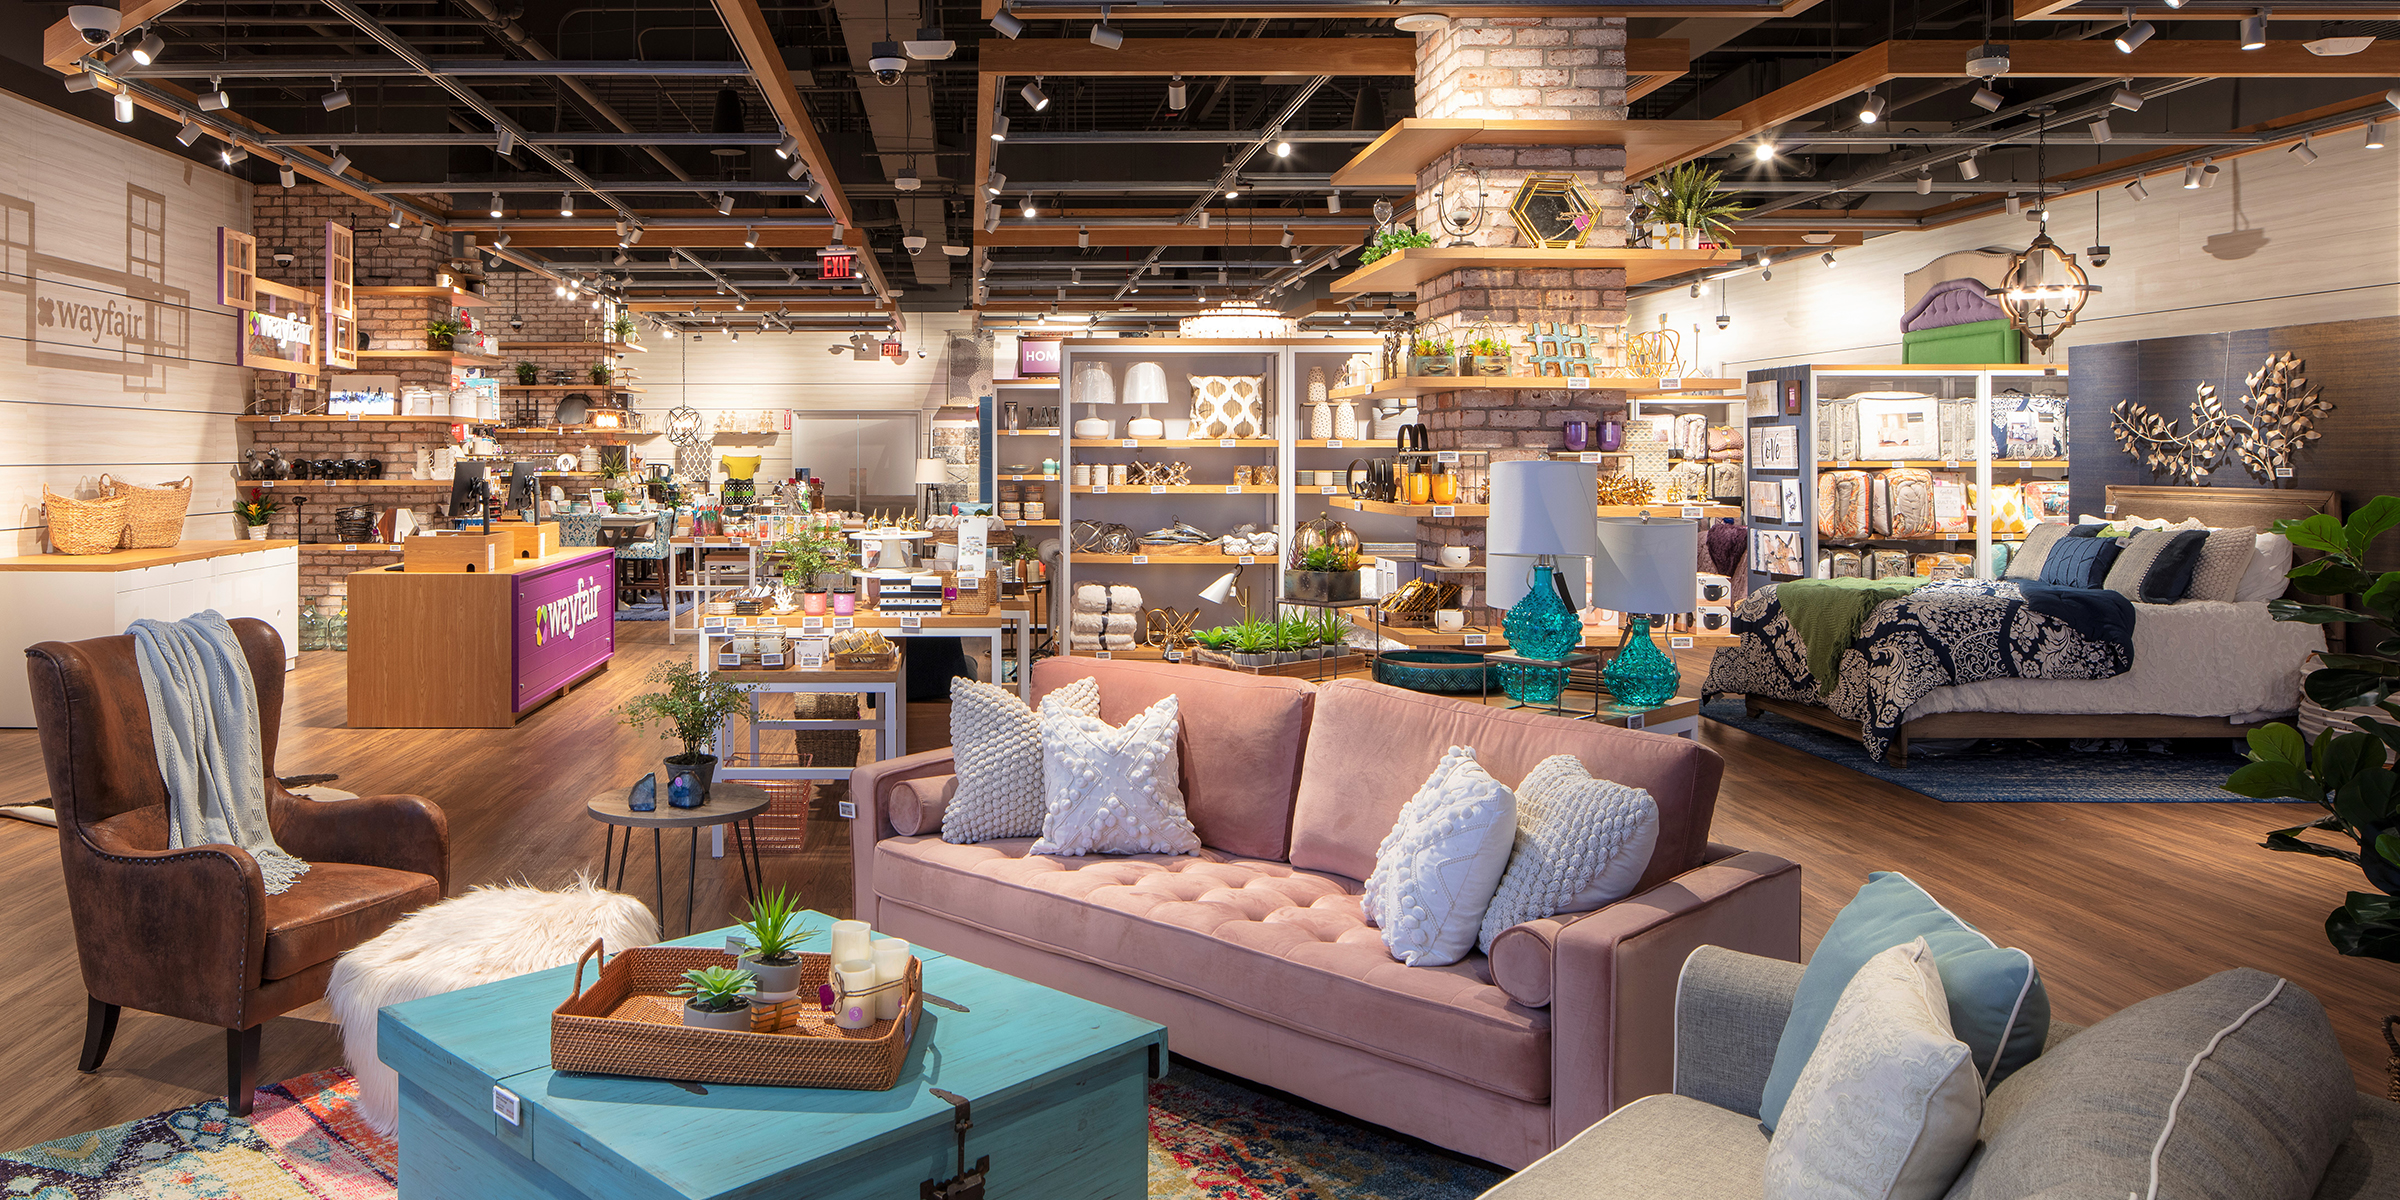 wayfair just opened its first store in natick massachusetts